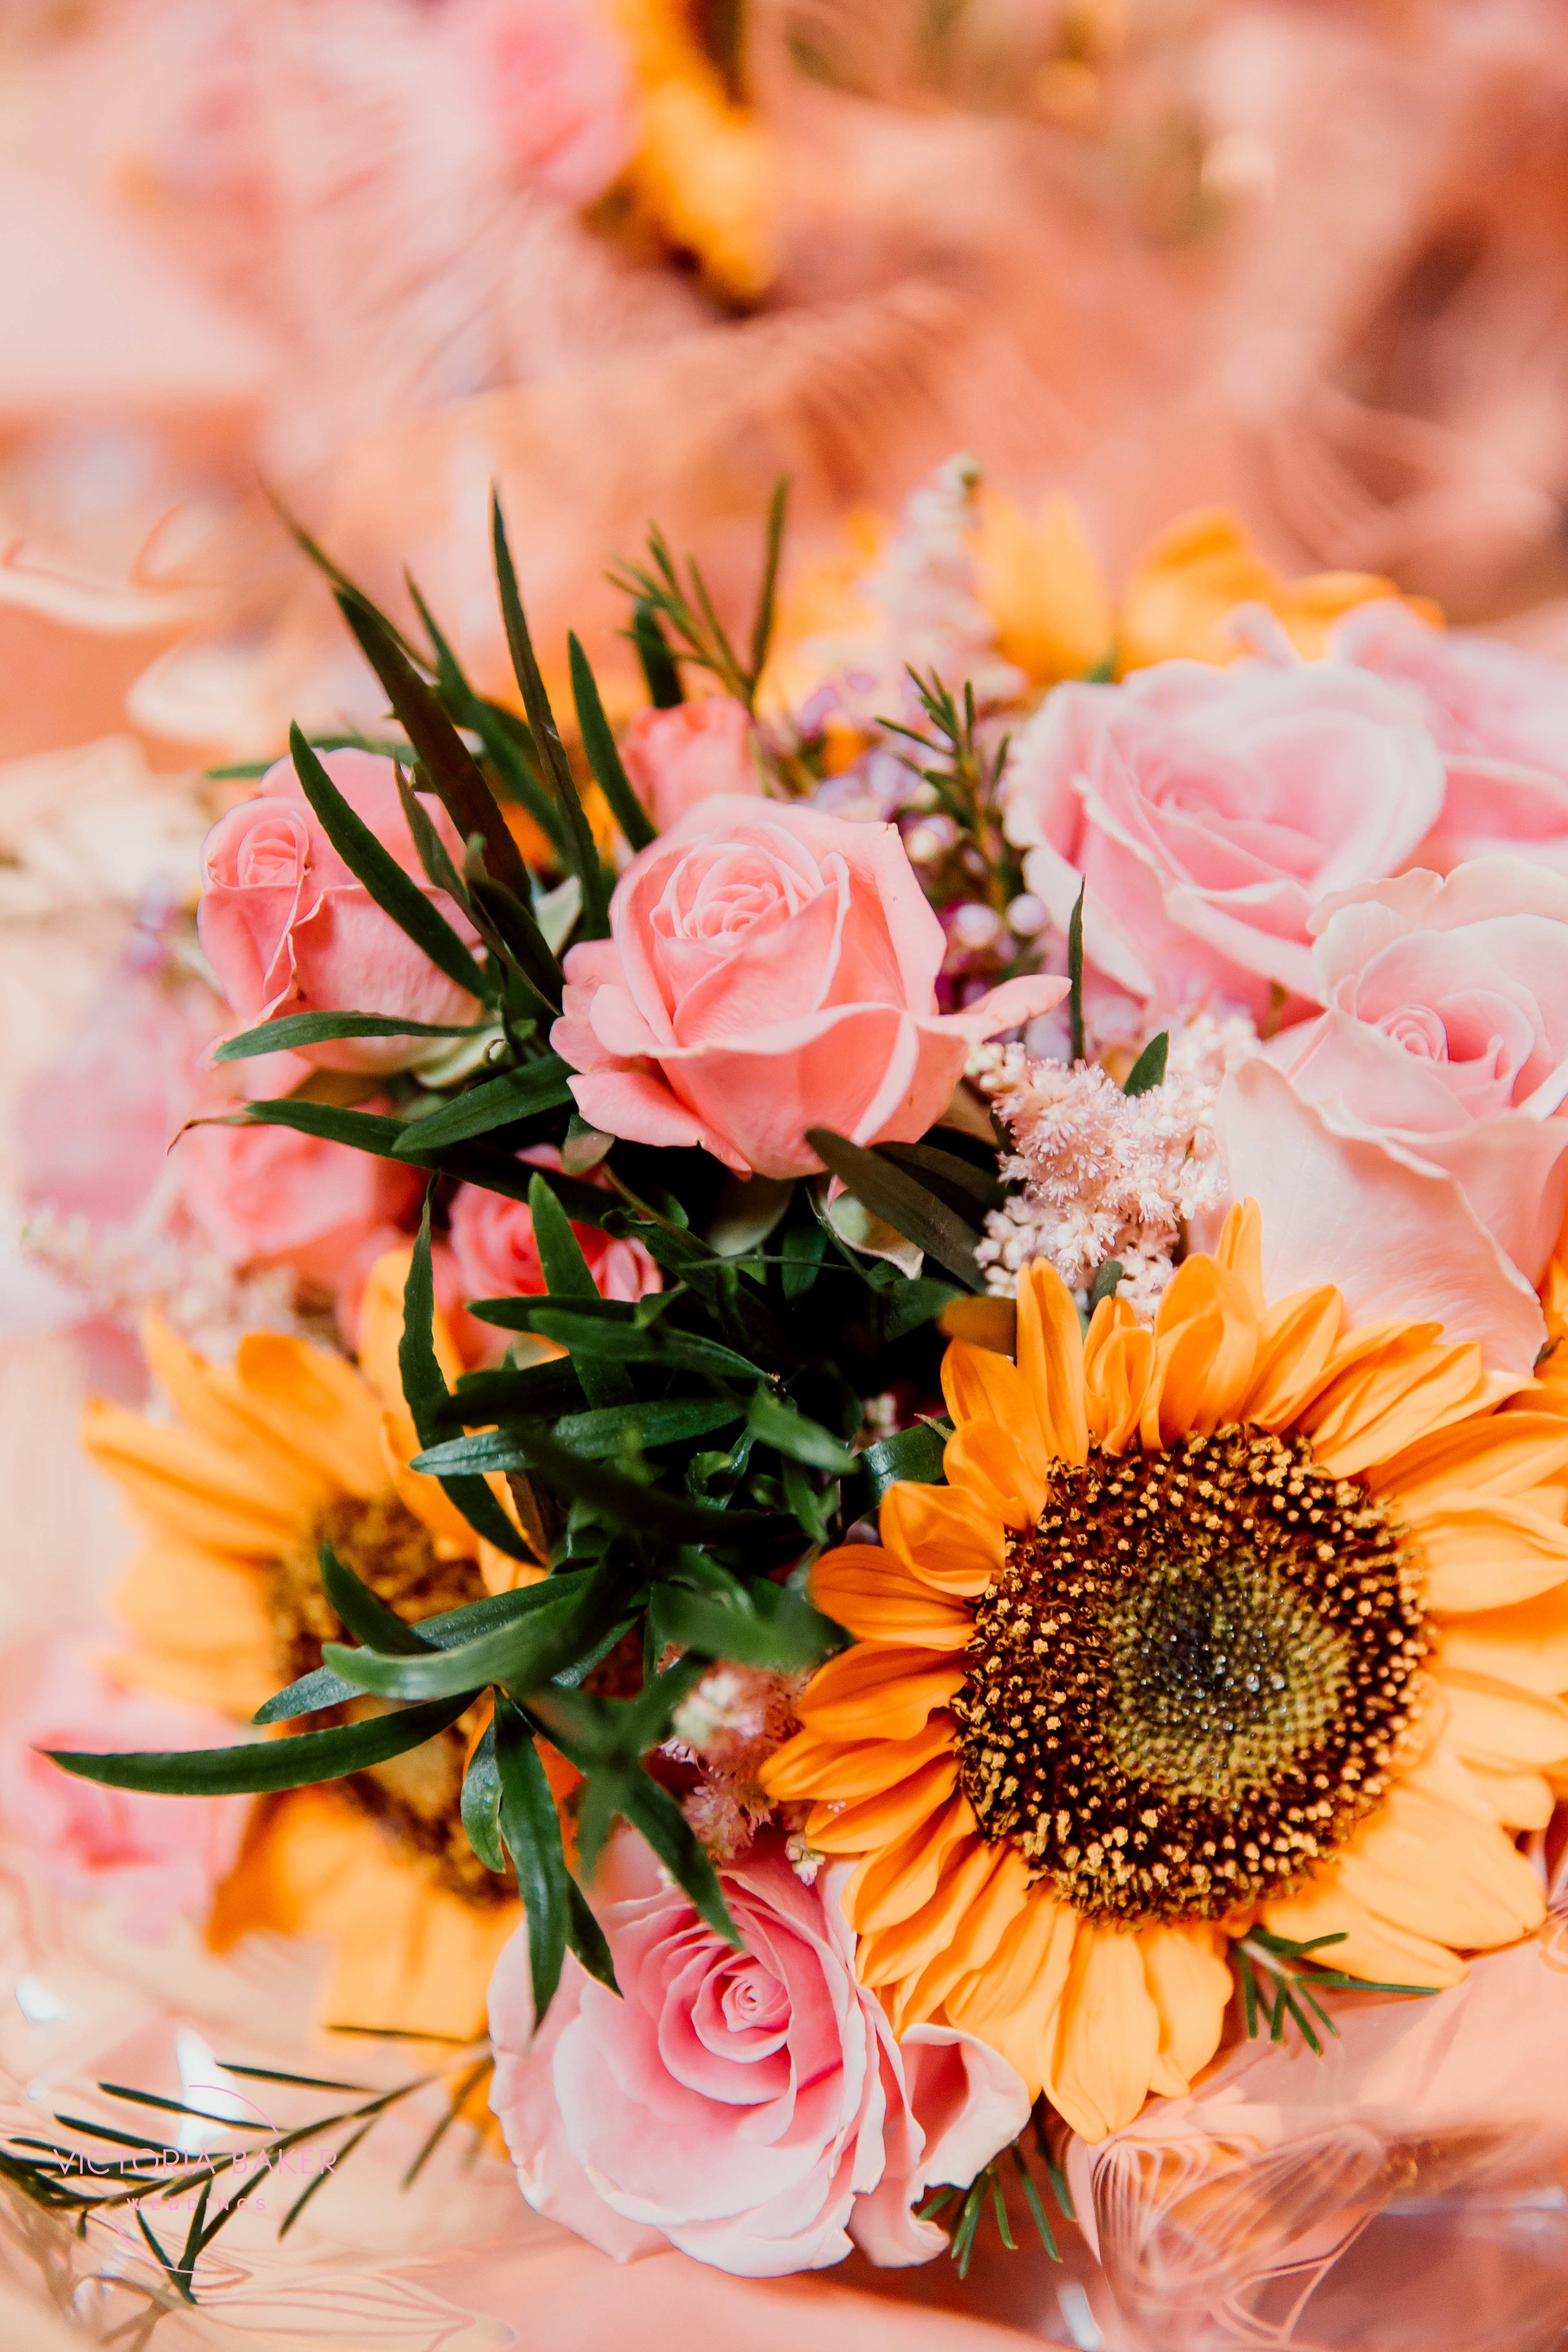 Handpicked flowers from Kilnsey Park Estate Wedding Photography